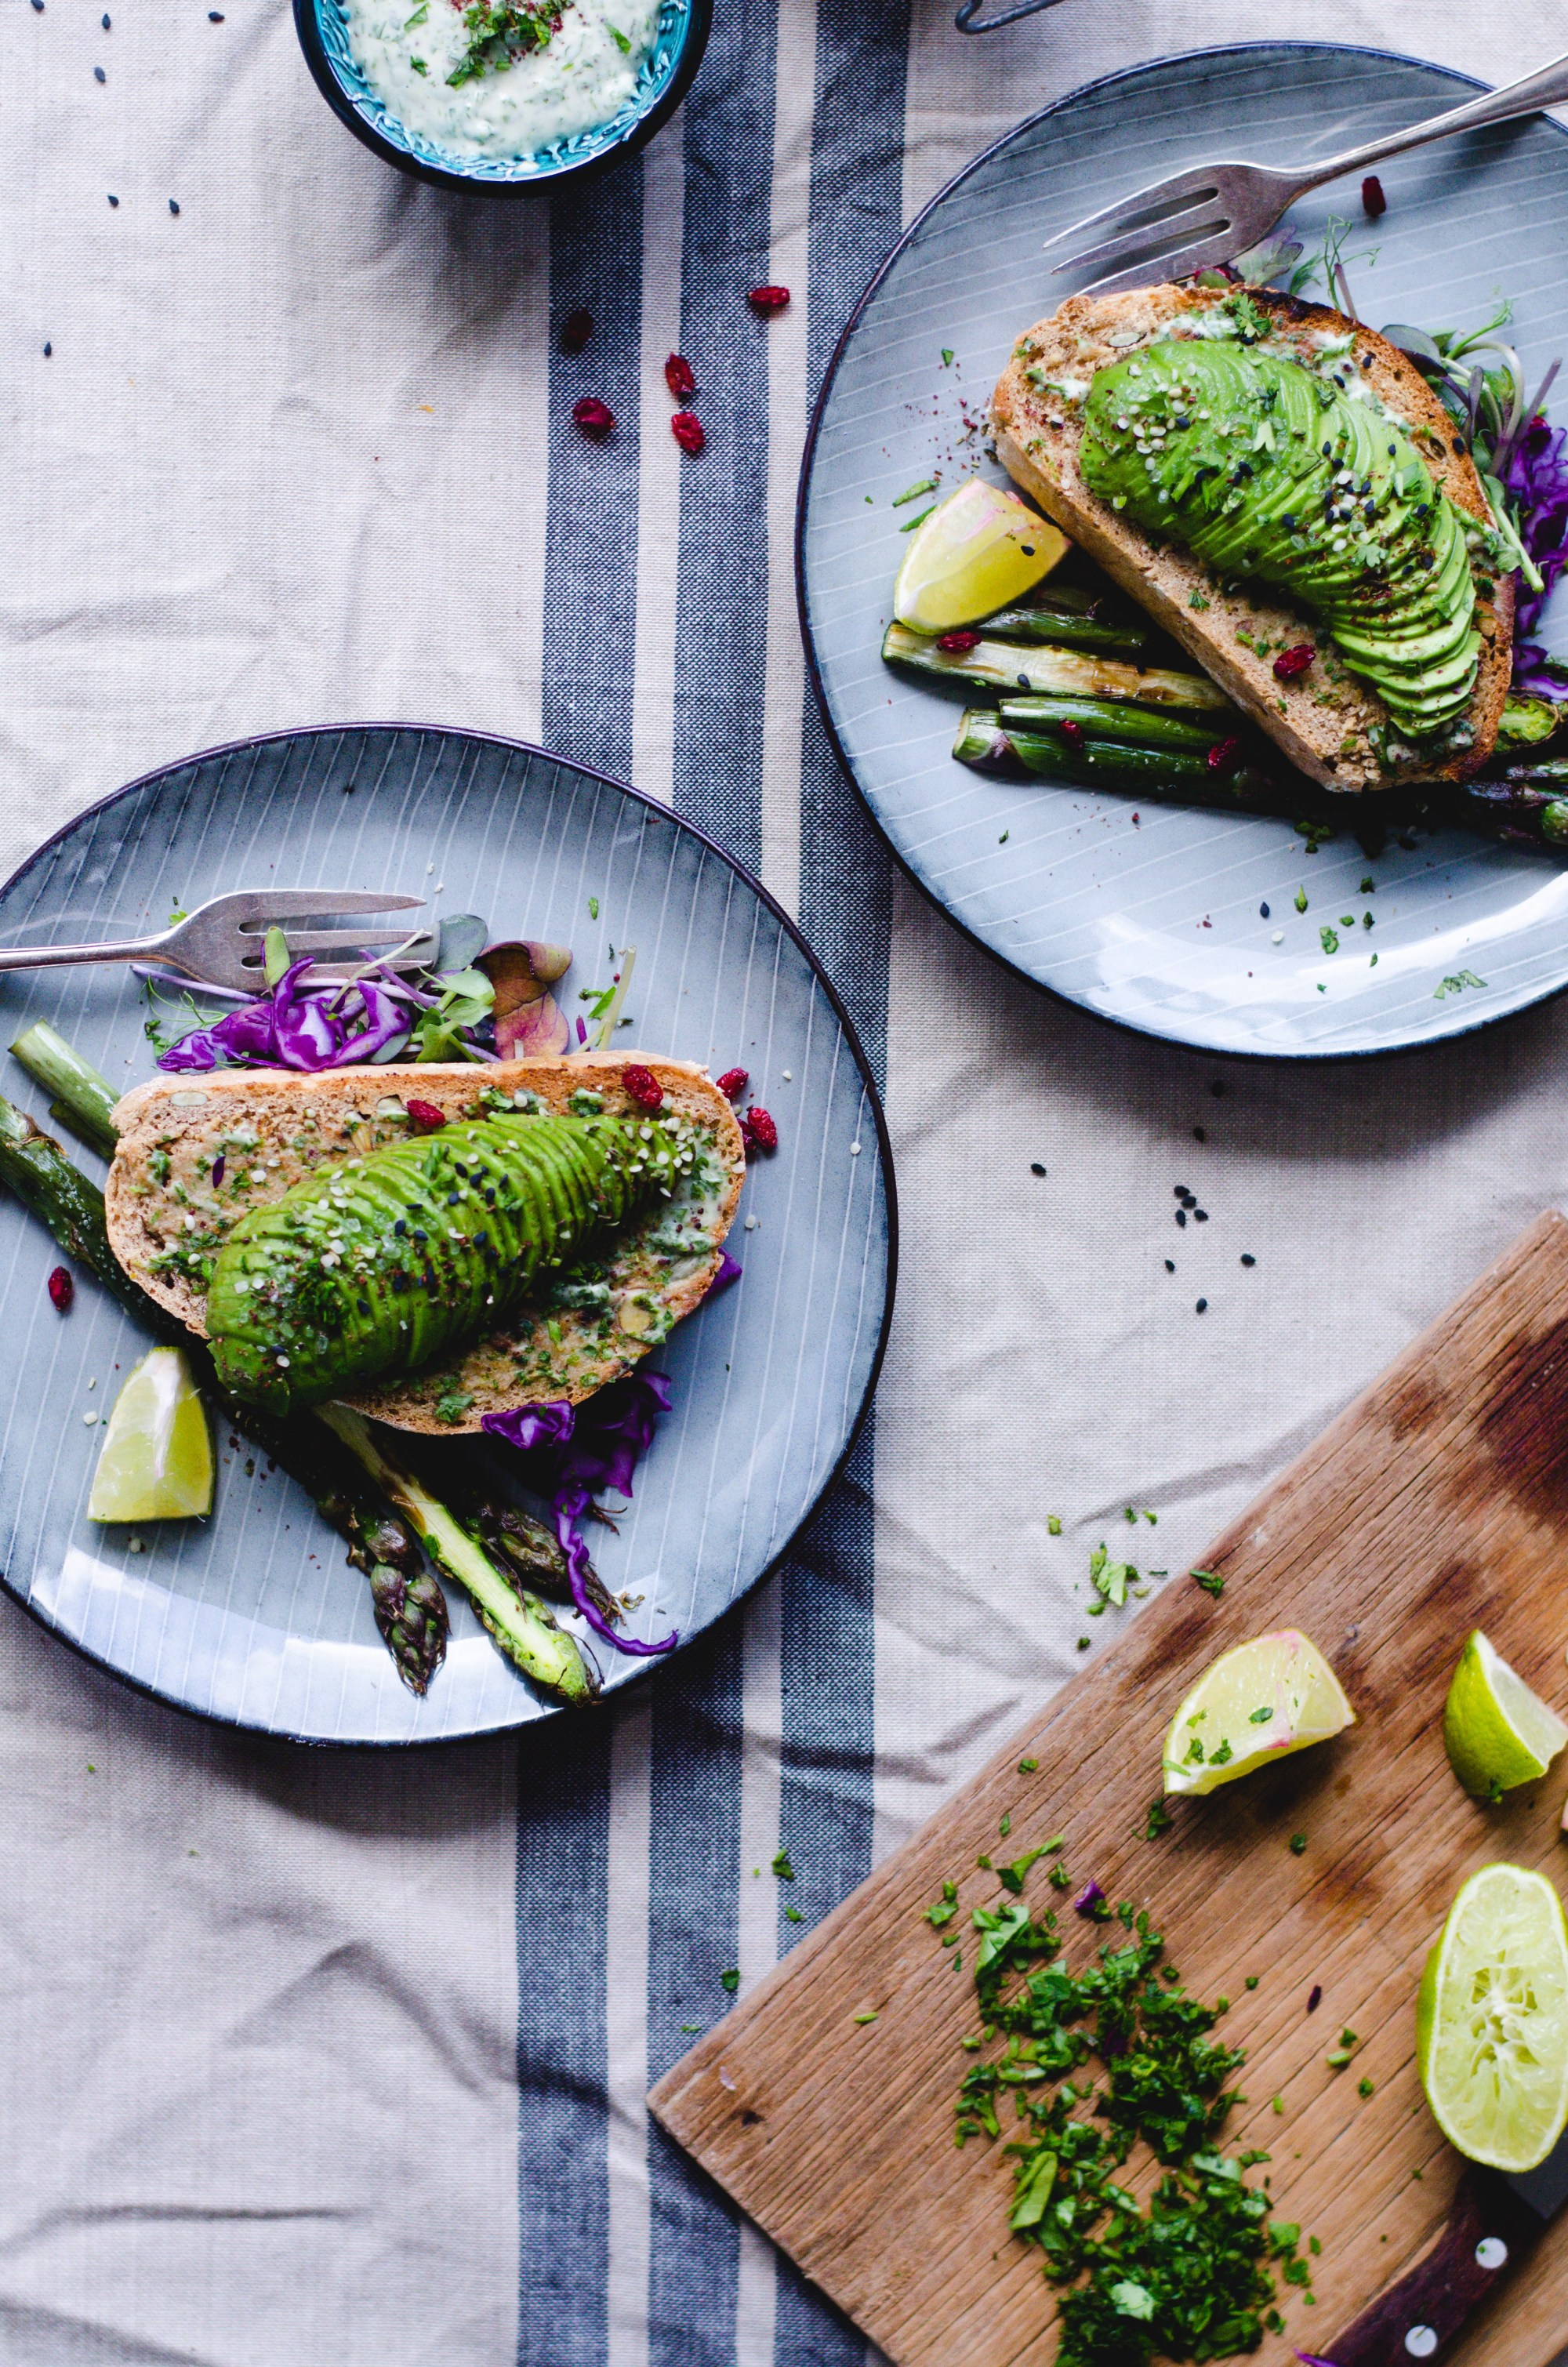 Tahini avocado toast with garlic asparagus. Bursting with flavor! via Fannie the Foodie #avocadotoast #garlicasparagus #healthyeating   https://www.roseclearfield.com